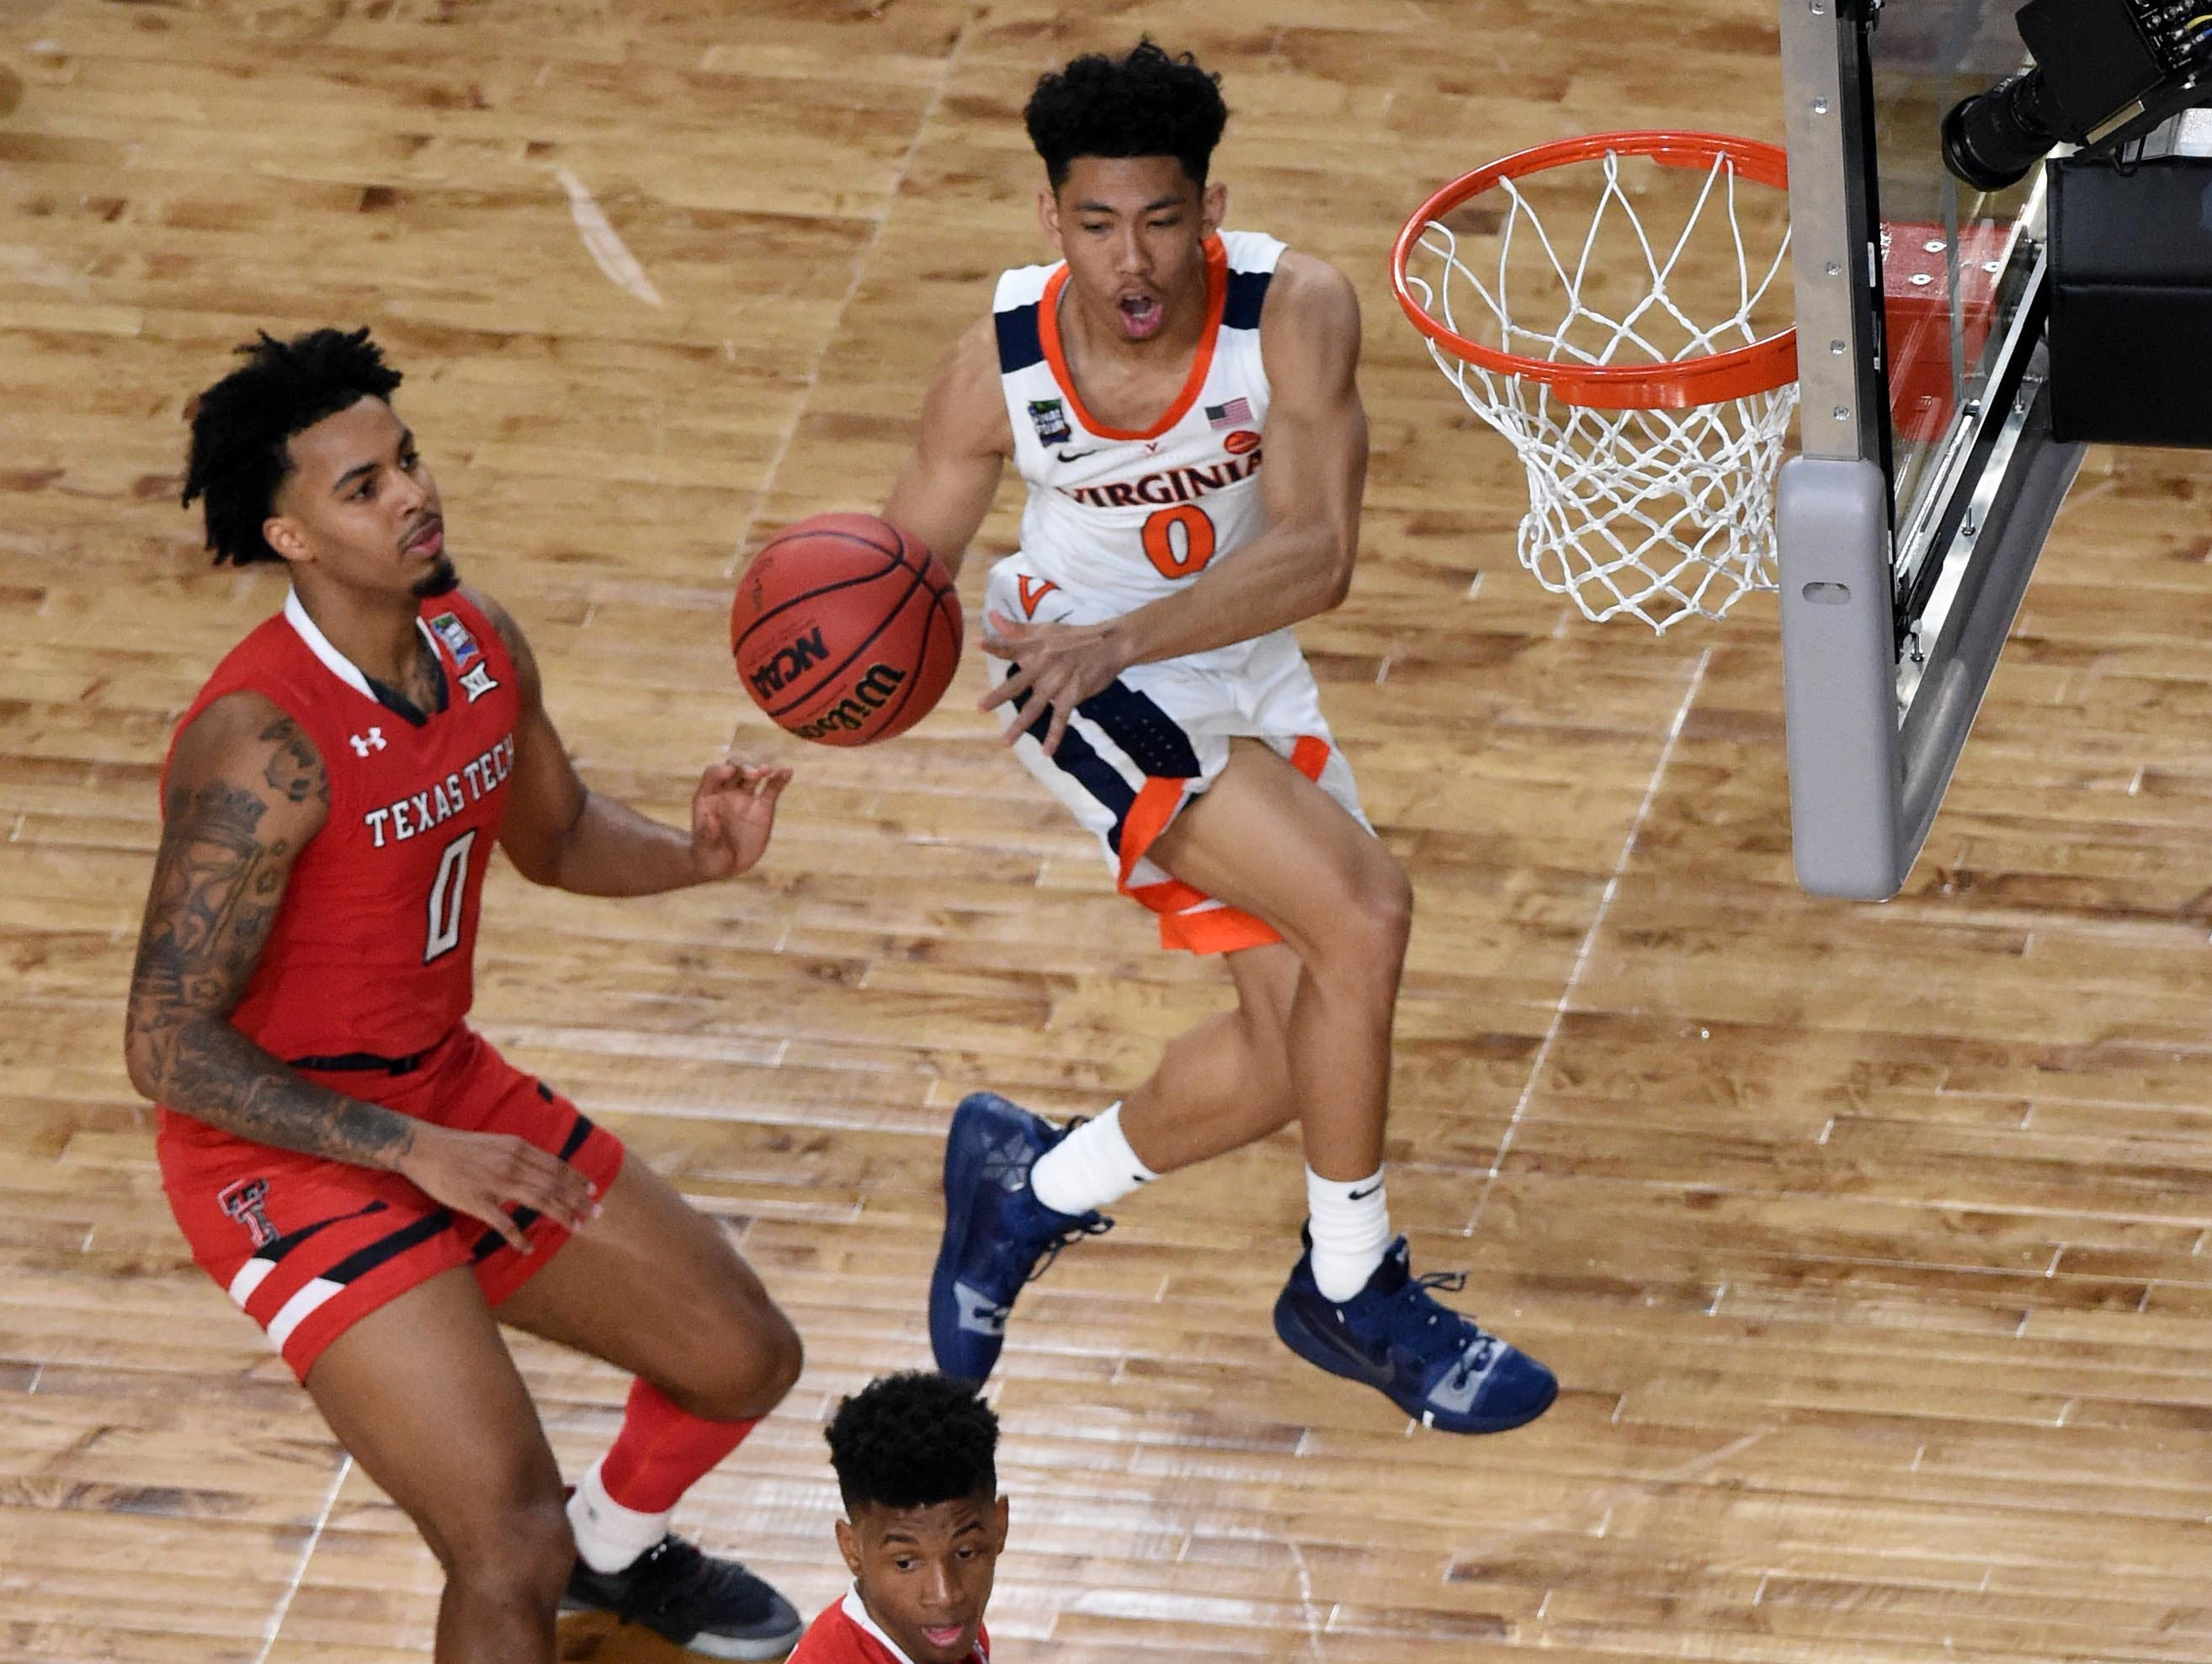 Apr 8, 2019; Minneapolis, MN, USA; Virginia Cavaliers guard Kihei Clark (0) passes as Texas Tech Red Raiders guard Kyler Edwards (0) and guard Jarrett Culver (23) defends during the first half  in the championship game of the 2019 men's Final Four at US Bank Stadium. Mandatory Credit: Bob Donnan-USA TODAY Sports